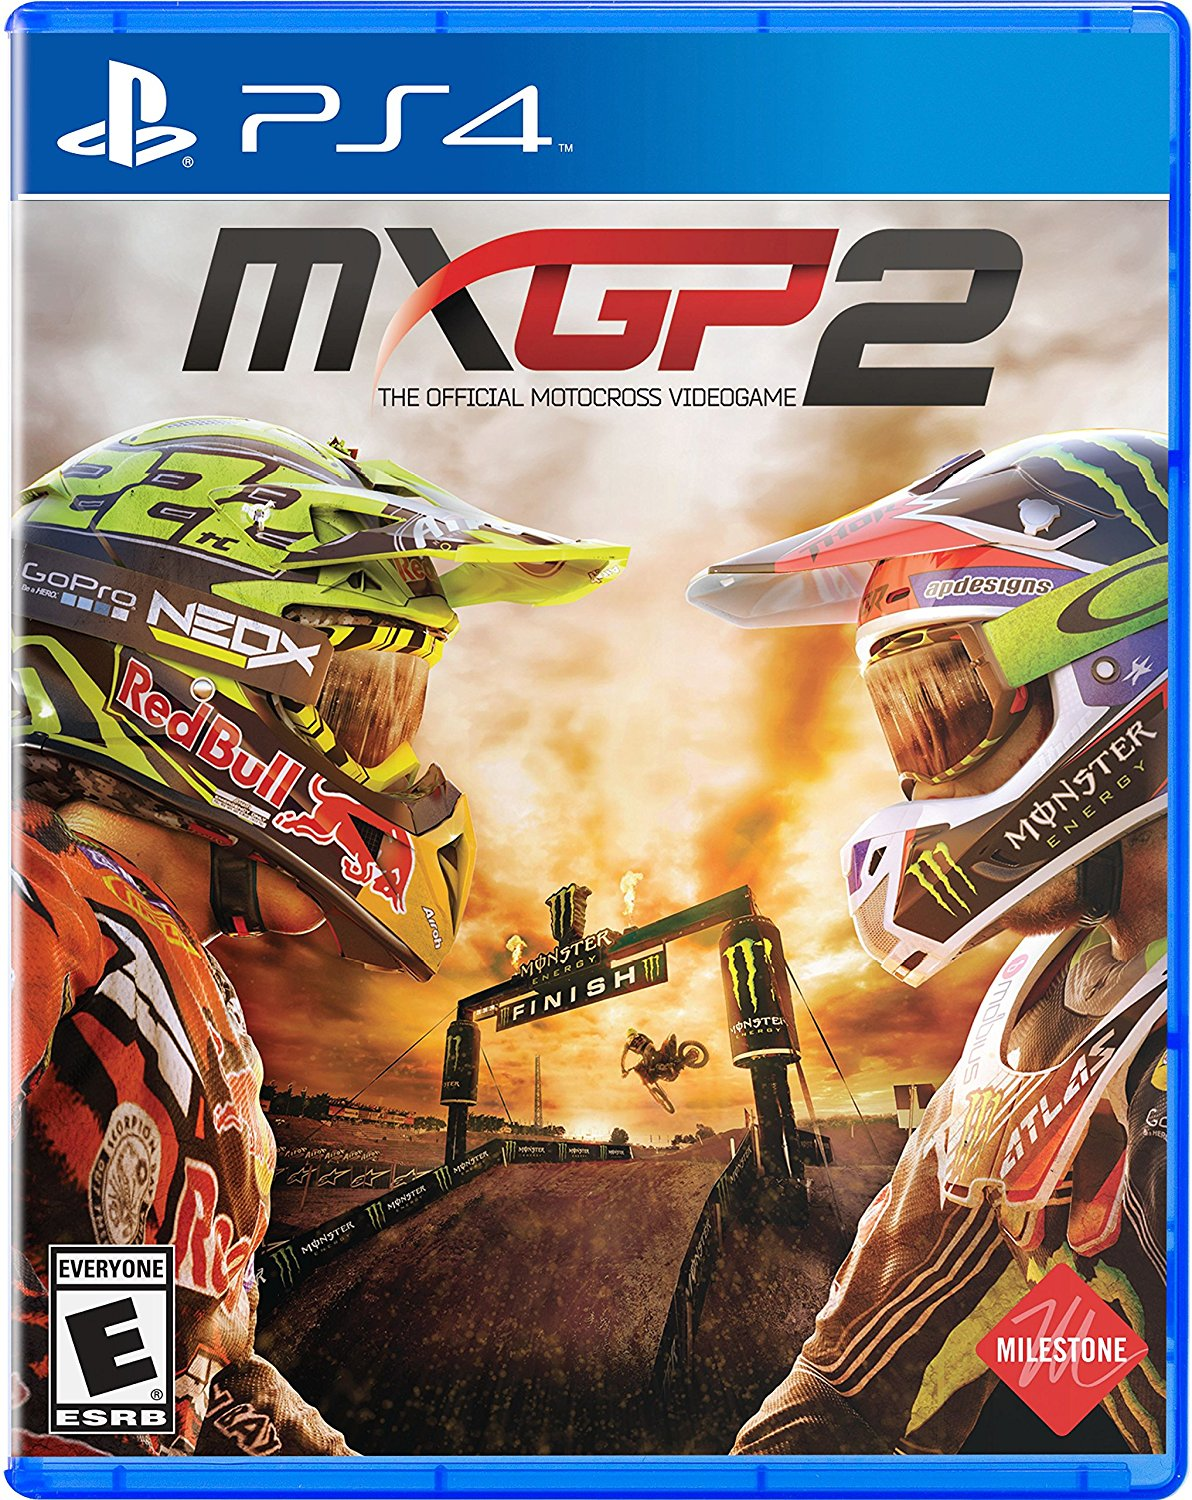 mx-gp2-dua-xe-mo-to-game-ps4